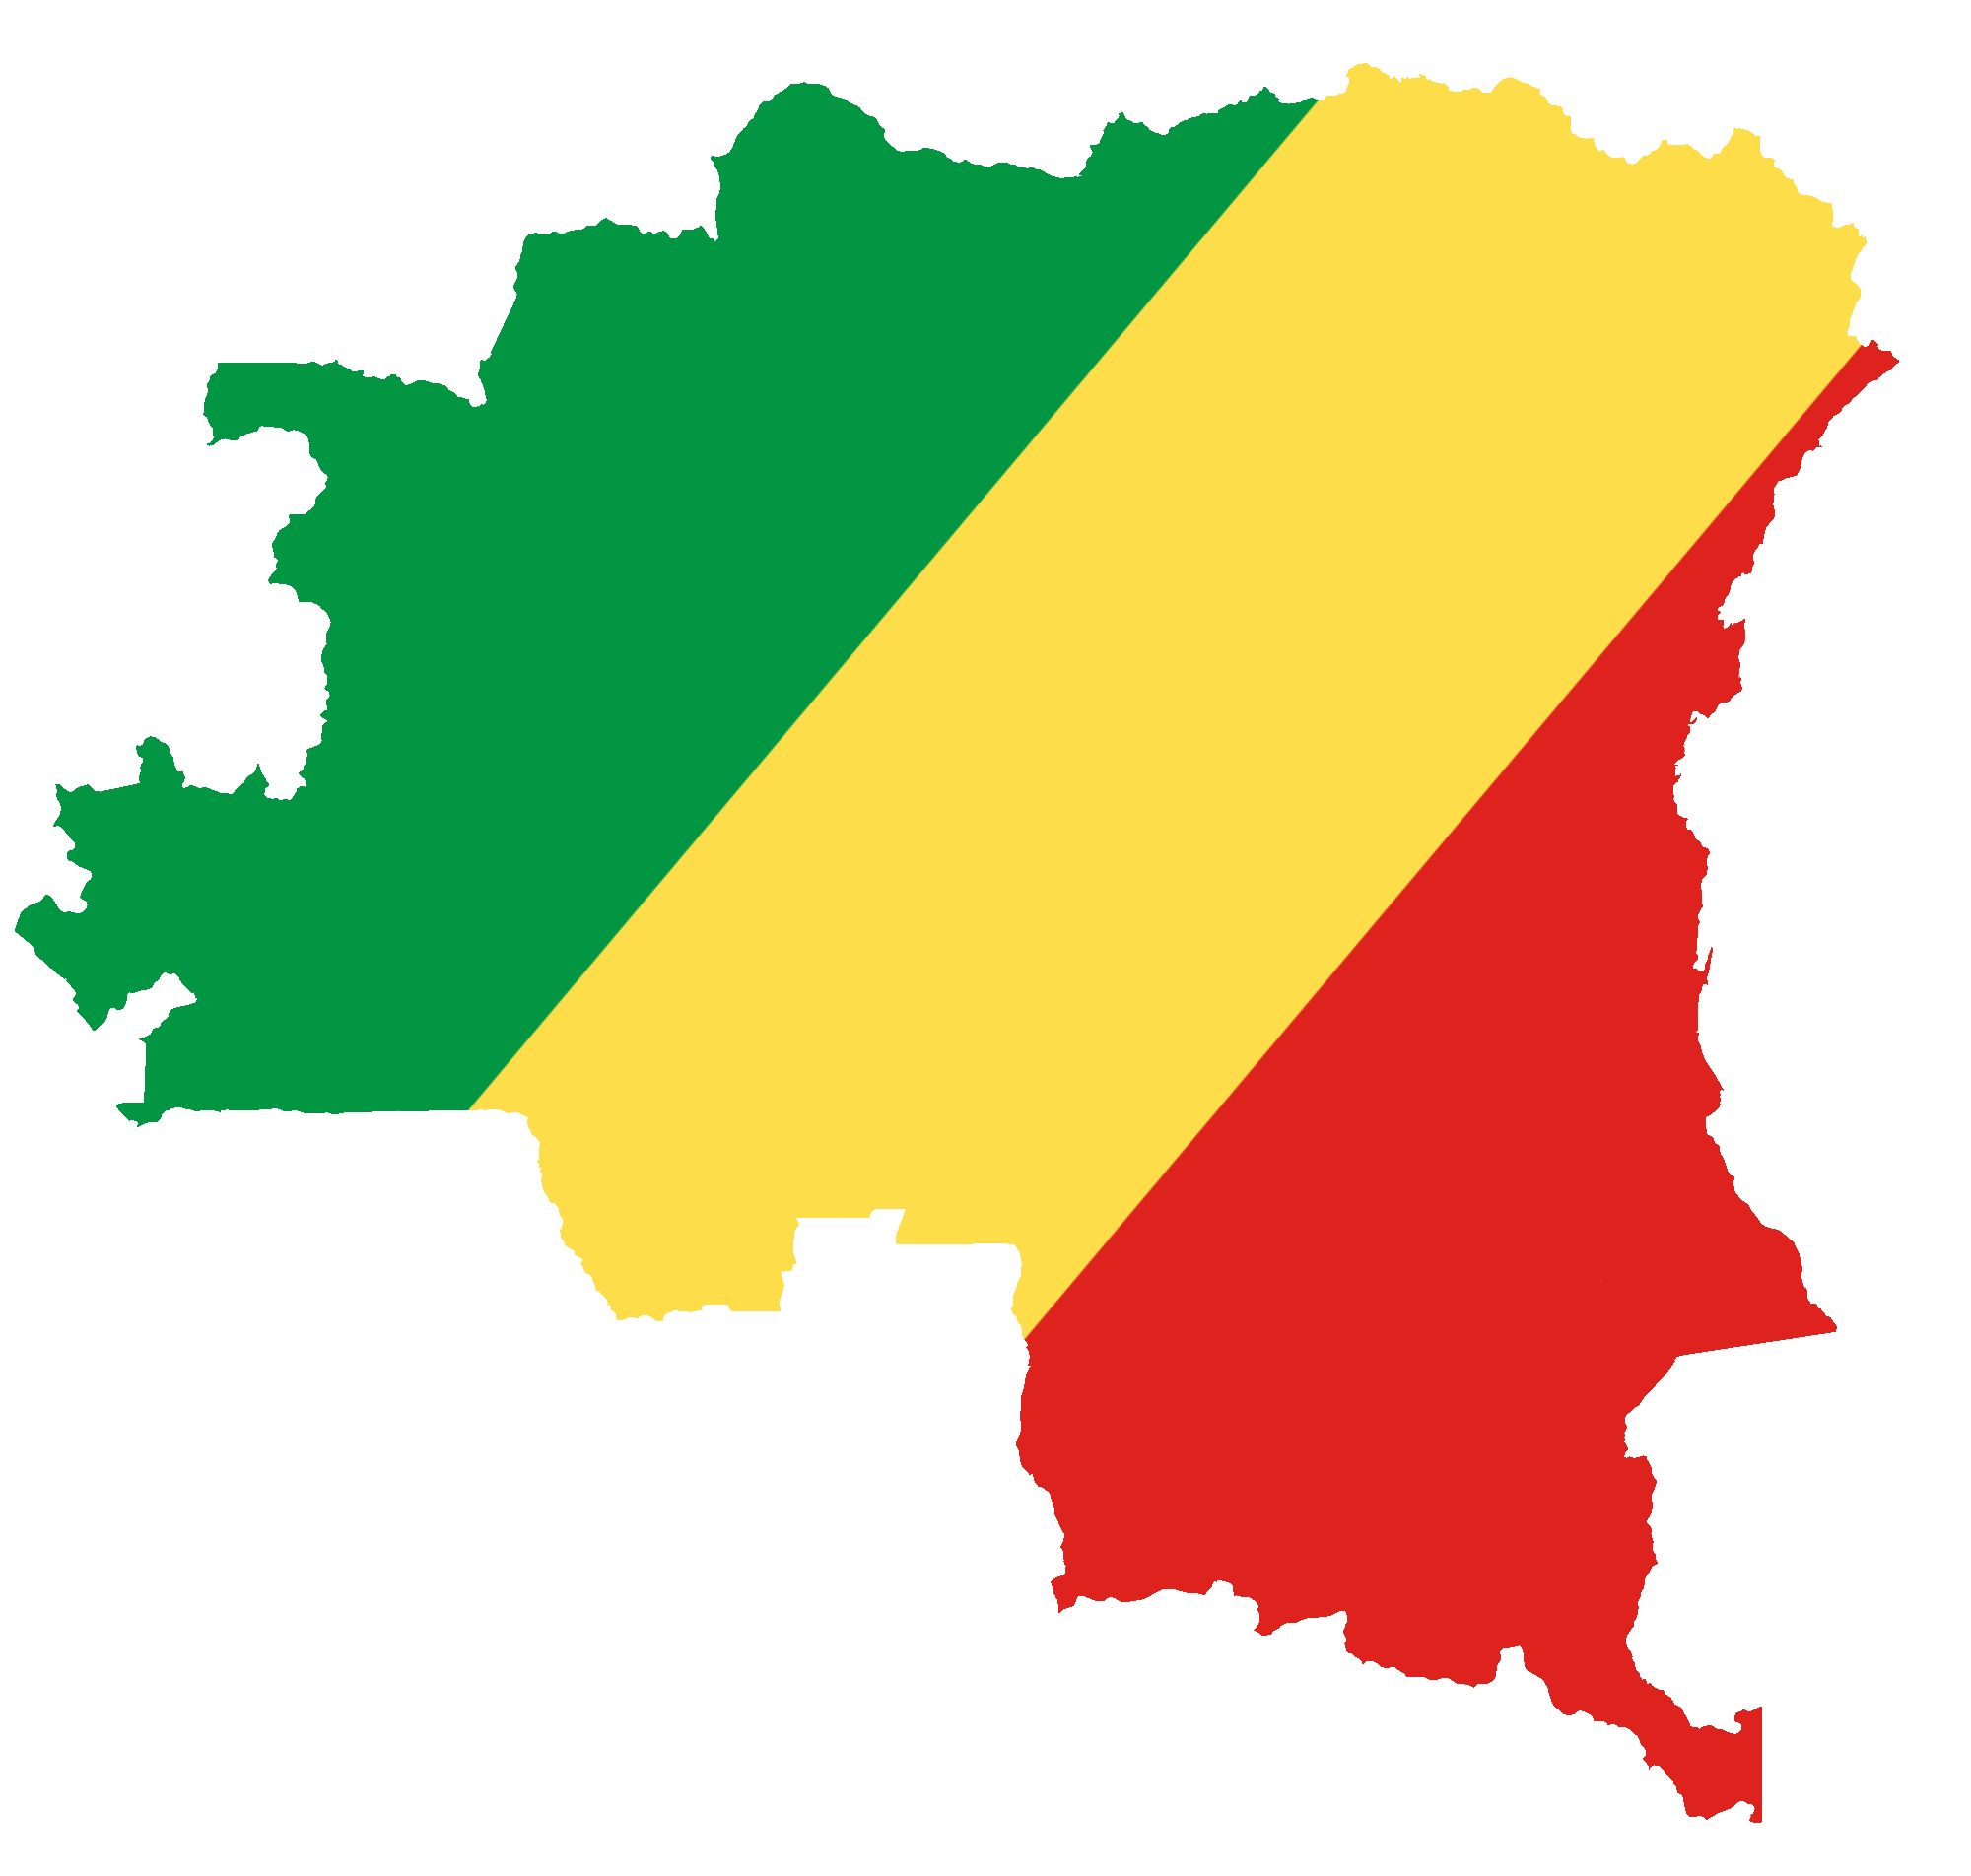 file flag map of greater congo  republic of the congo  png vector images free cows vector images free online